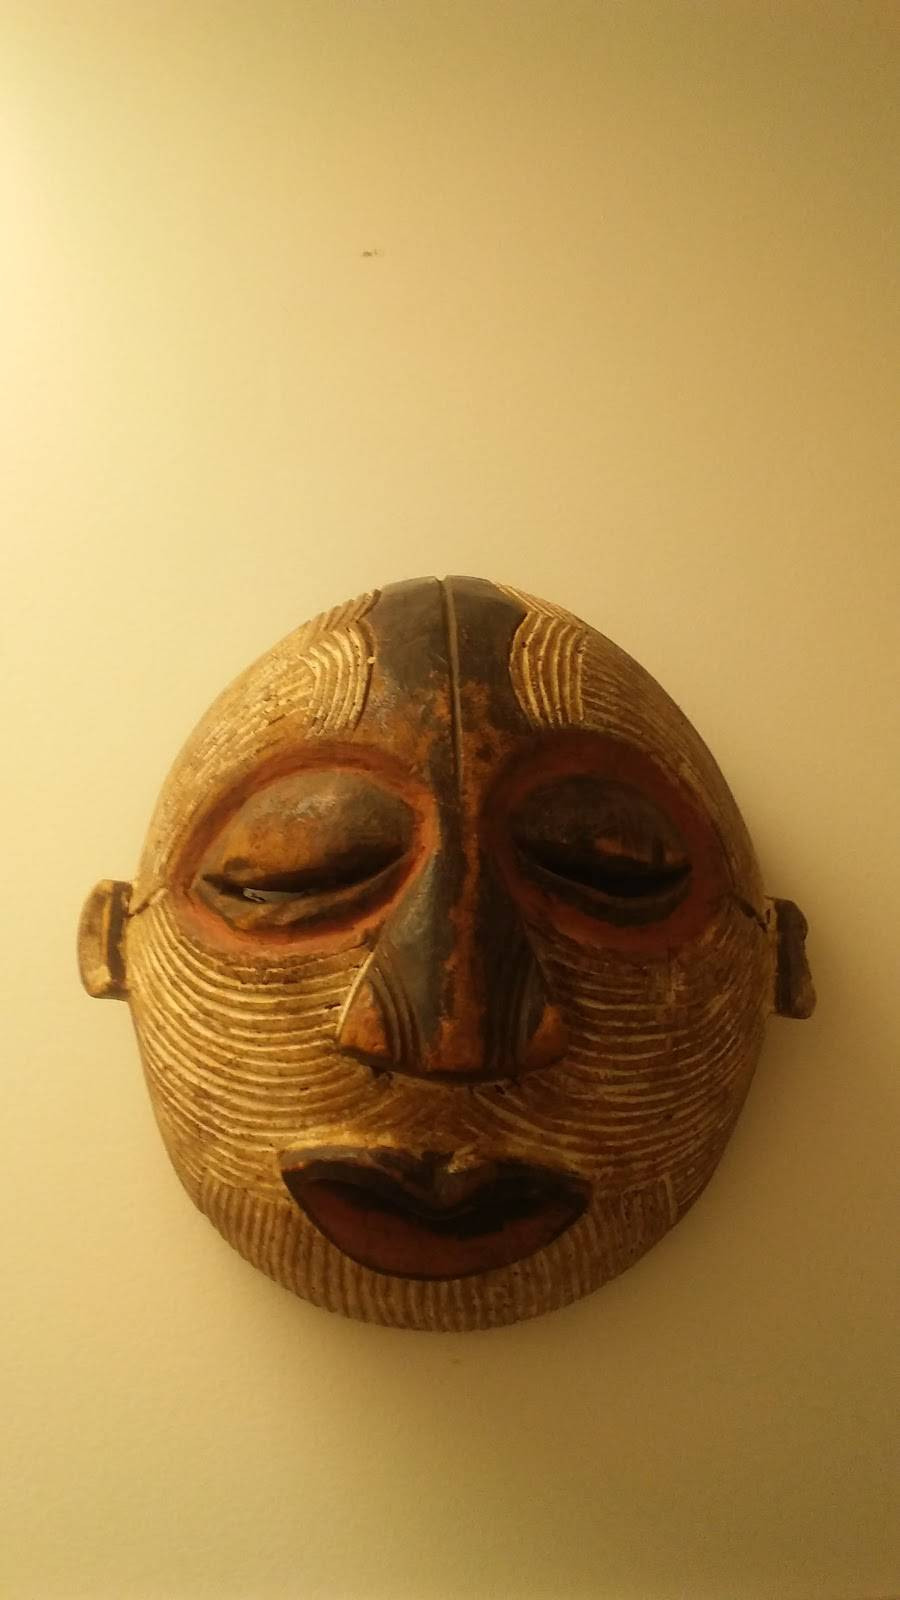 Africa Culture center-Museum - museum  | Photo 6 of 10 | Address: 1935 Q St, Lincoln, NE 68503, USA | Phone: (402) 438-0529